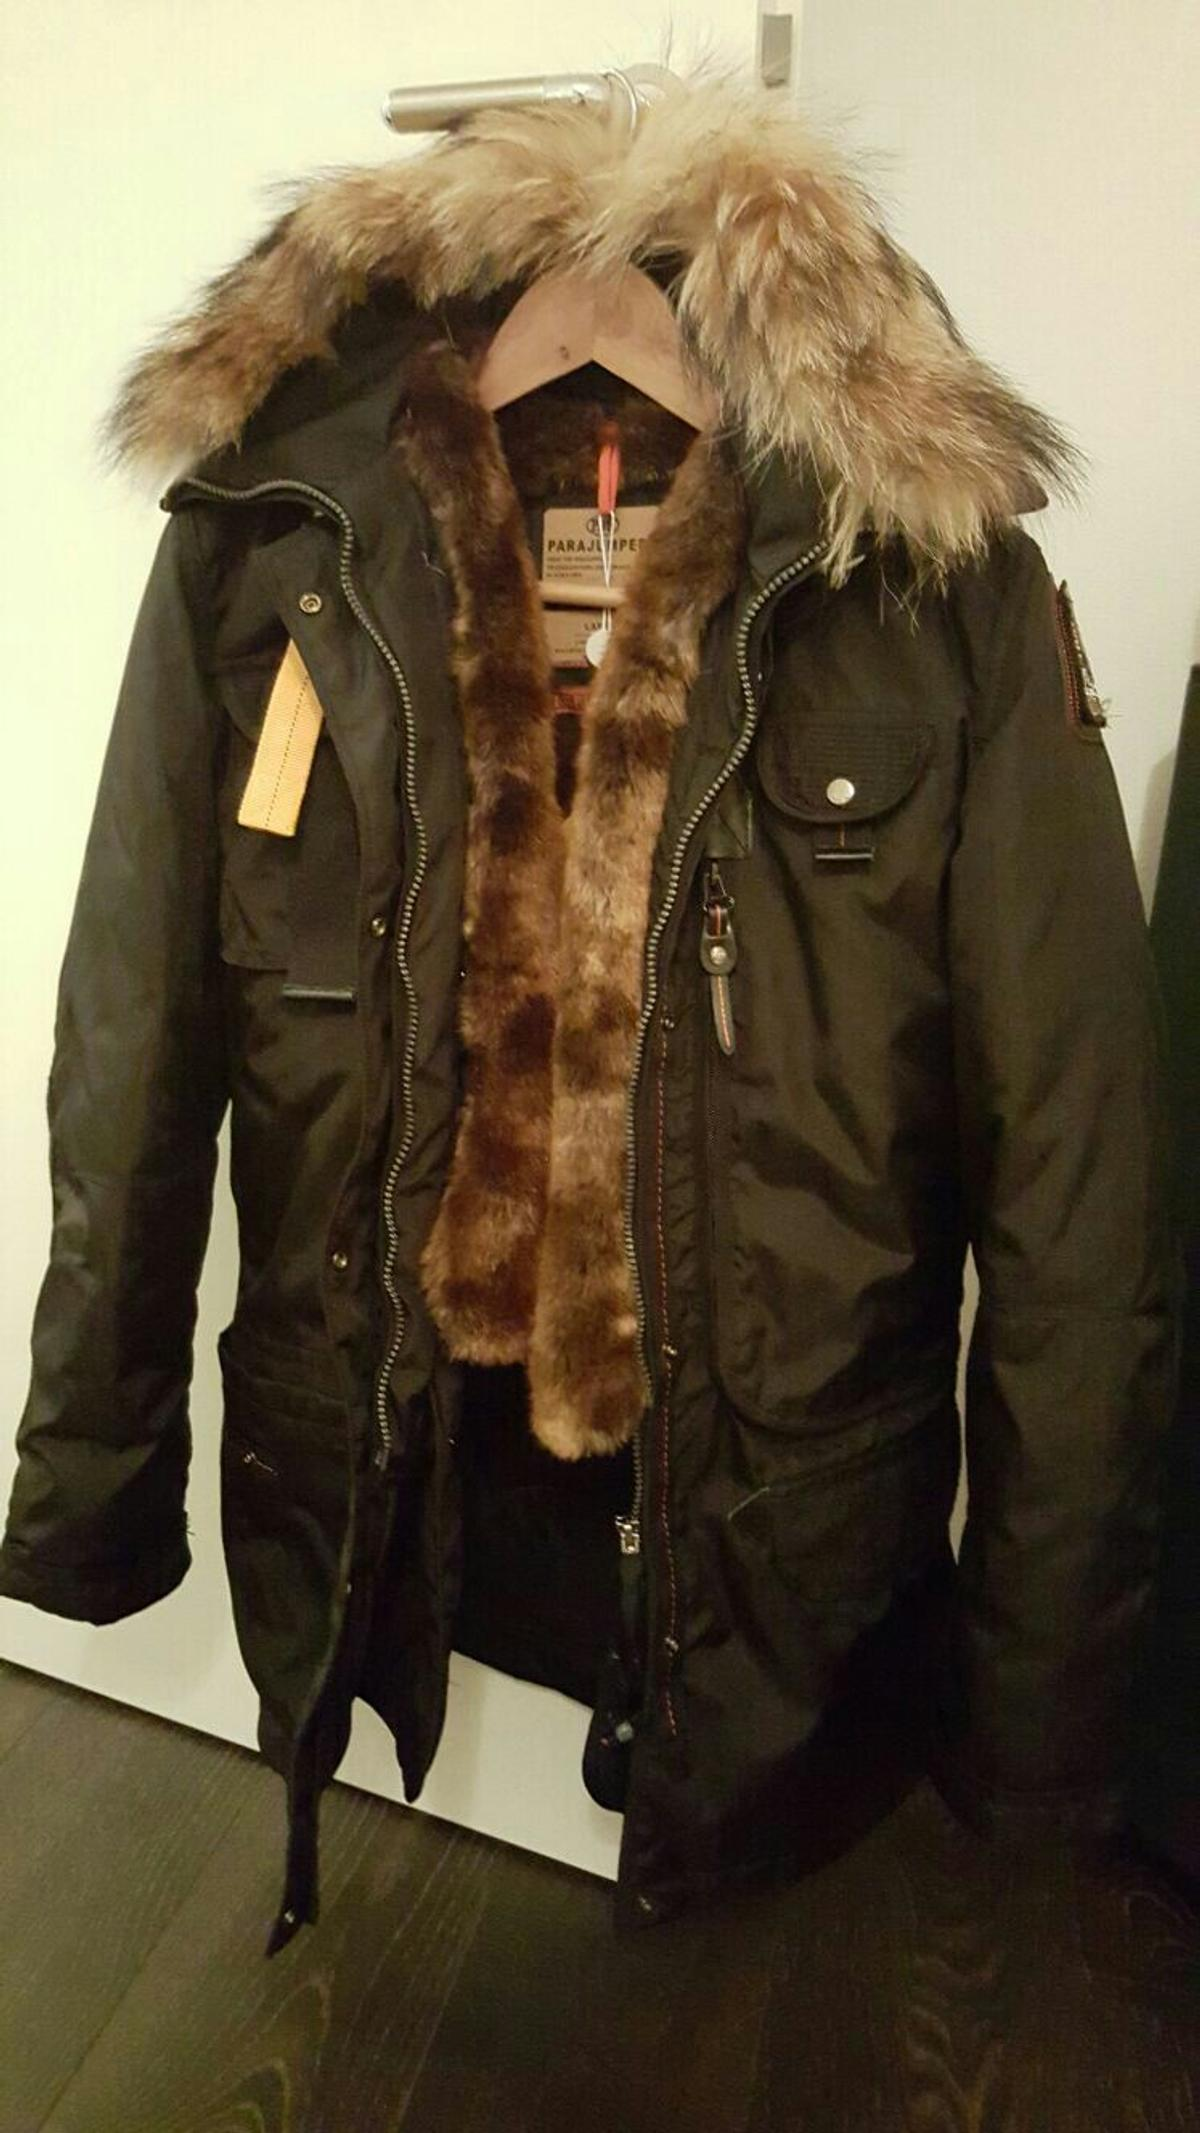 new arrivals 3b565 f5b2e Parajumpers Wintermantel Jacke Gr L Damen in 74918 ...